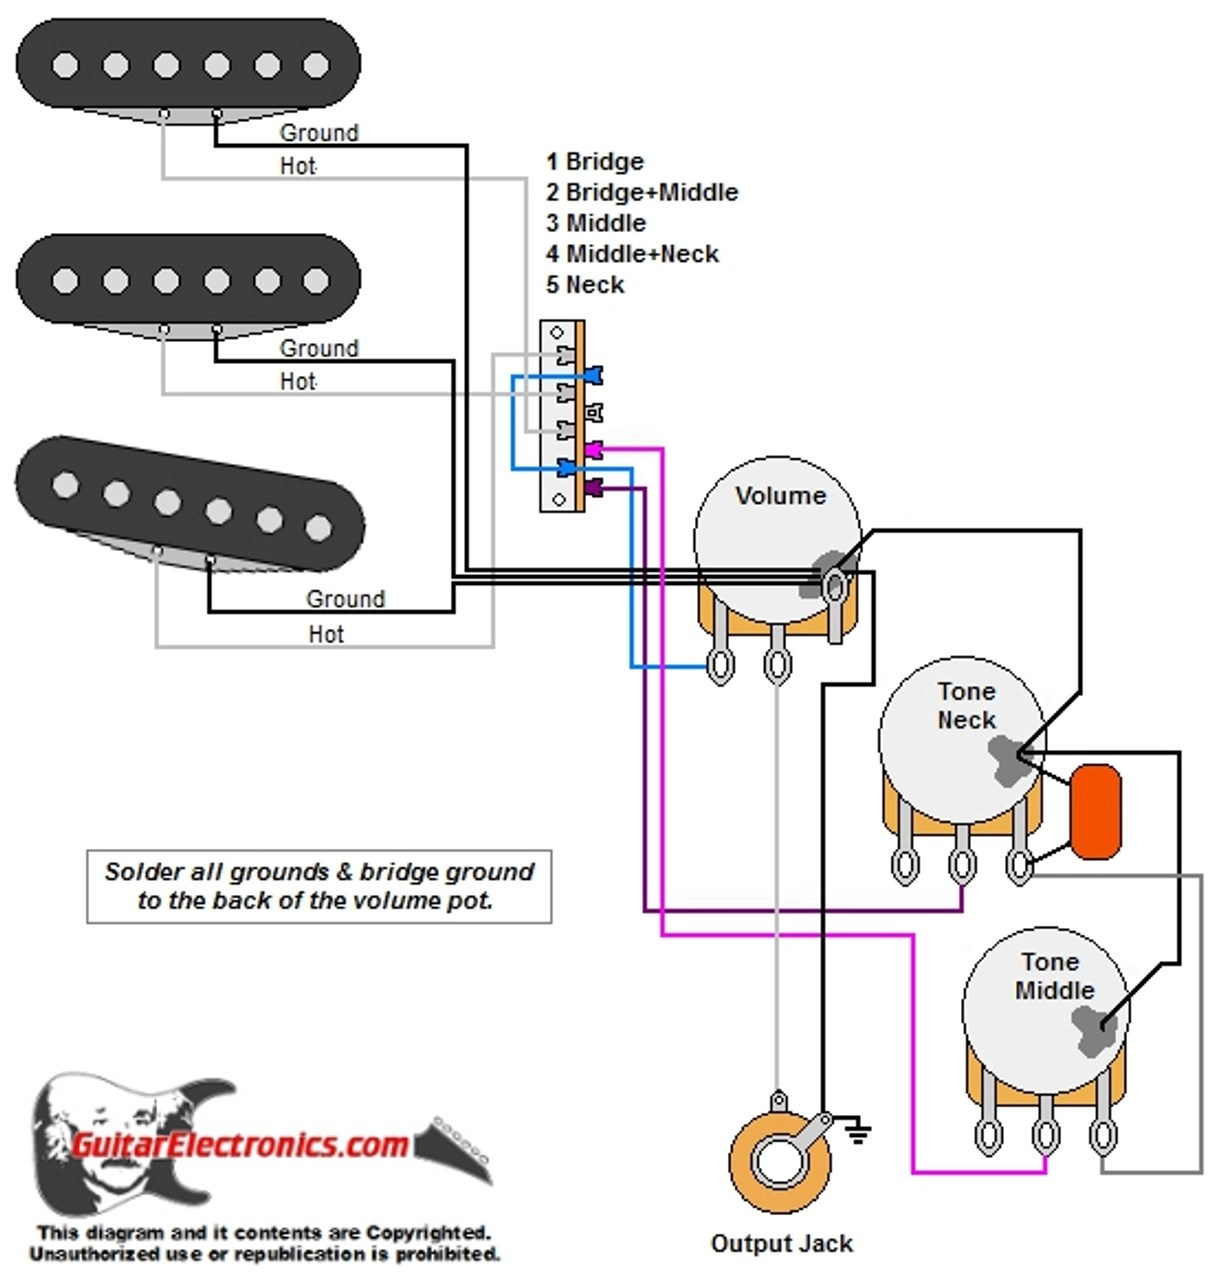 medium resolution of fender strat wiring diagrams wiring diagram schematicstrat style guitar wiring diagram fender squier strat wiring diagram